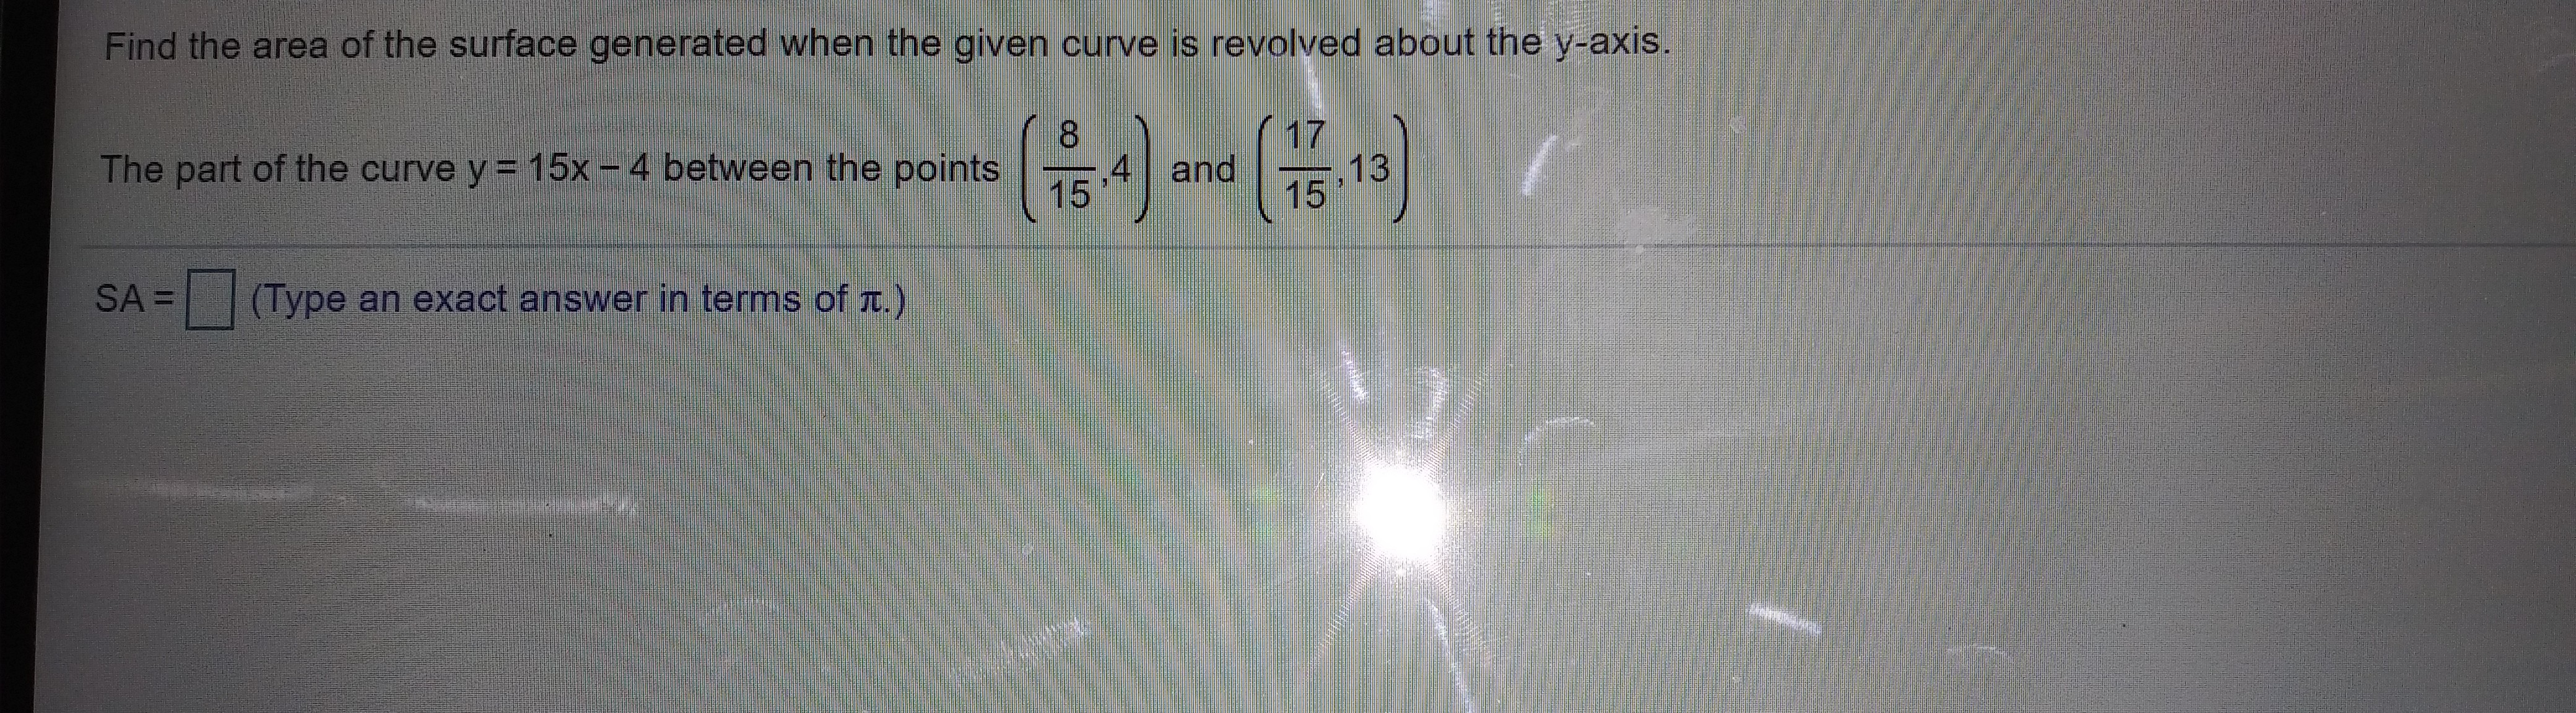 Find the area of the surface generated when the given curve is revolved about the y-axis. The part of the curve y 15x -4 between the points E SA =     (Type an exact answer in terms of ) 17 4) and  石,13